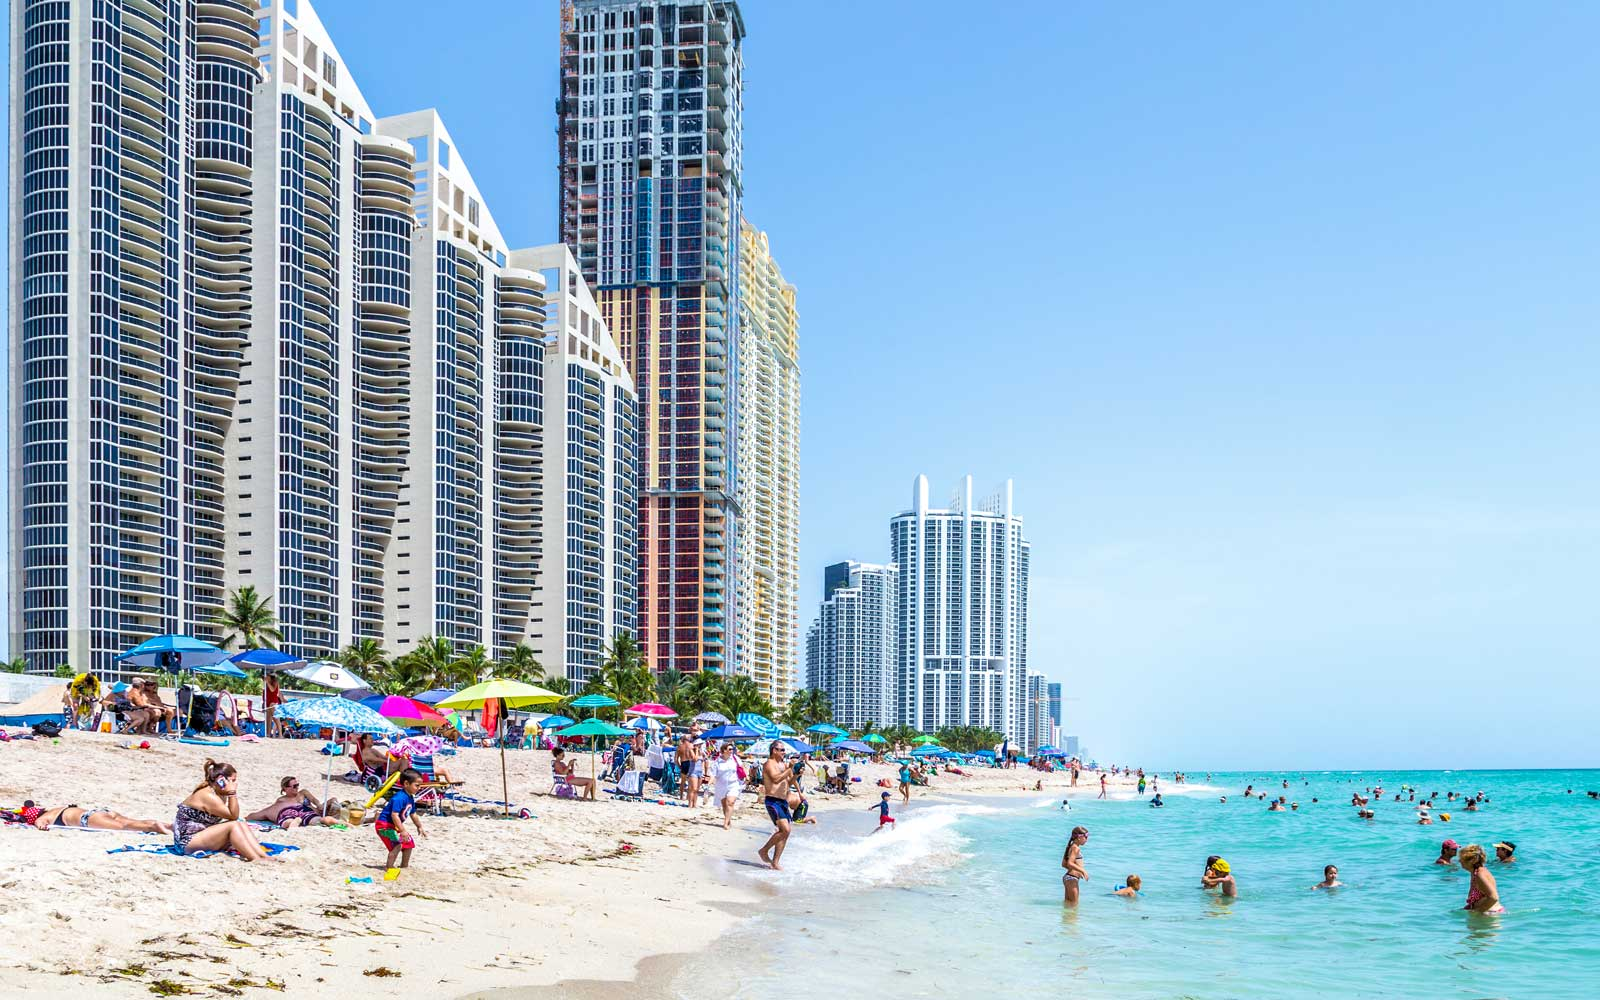 People enjoy Jade beach in Sunny Isles Beach, Florida, USA